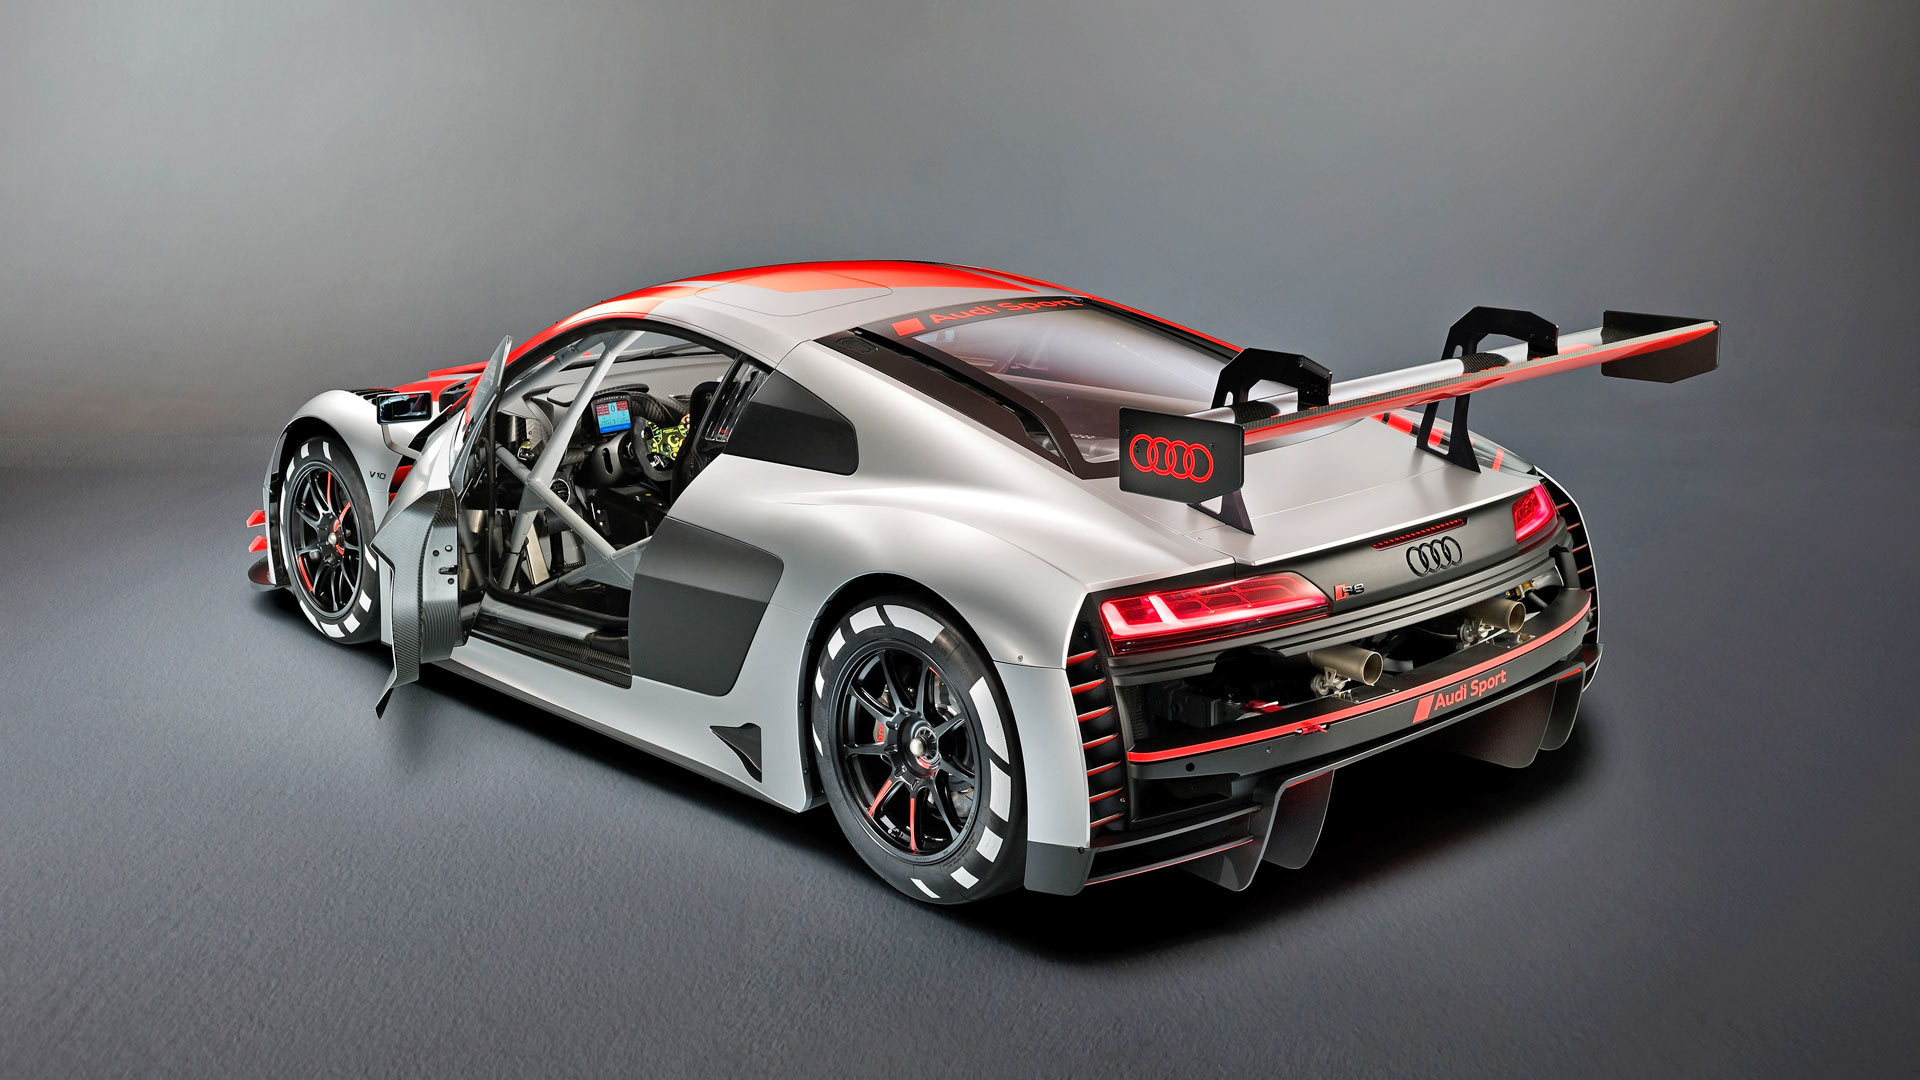 2019 Audi R8 Lms Gt3 Is Lighter Stiffer And Angrier Autodevot